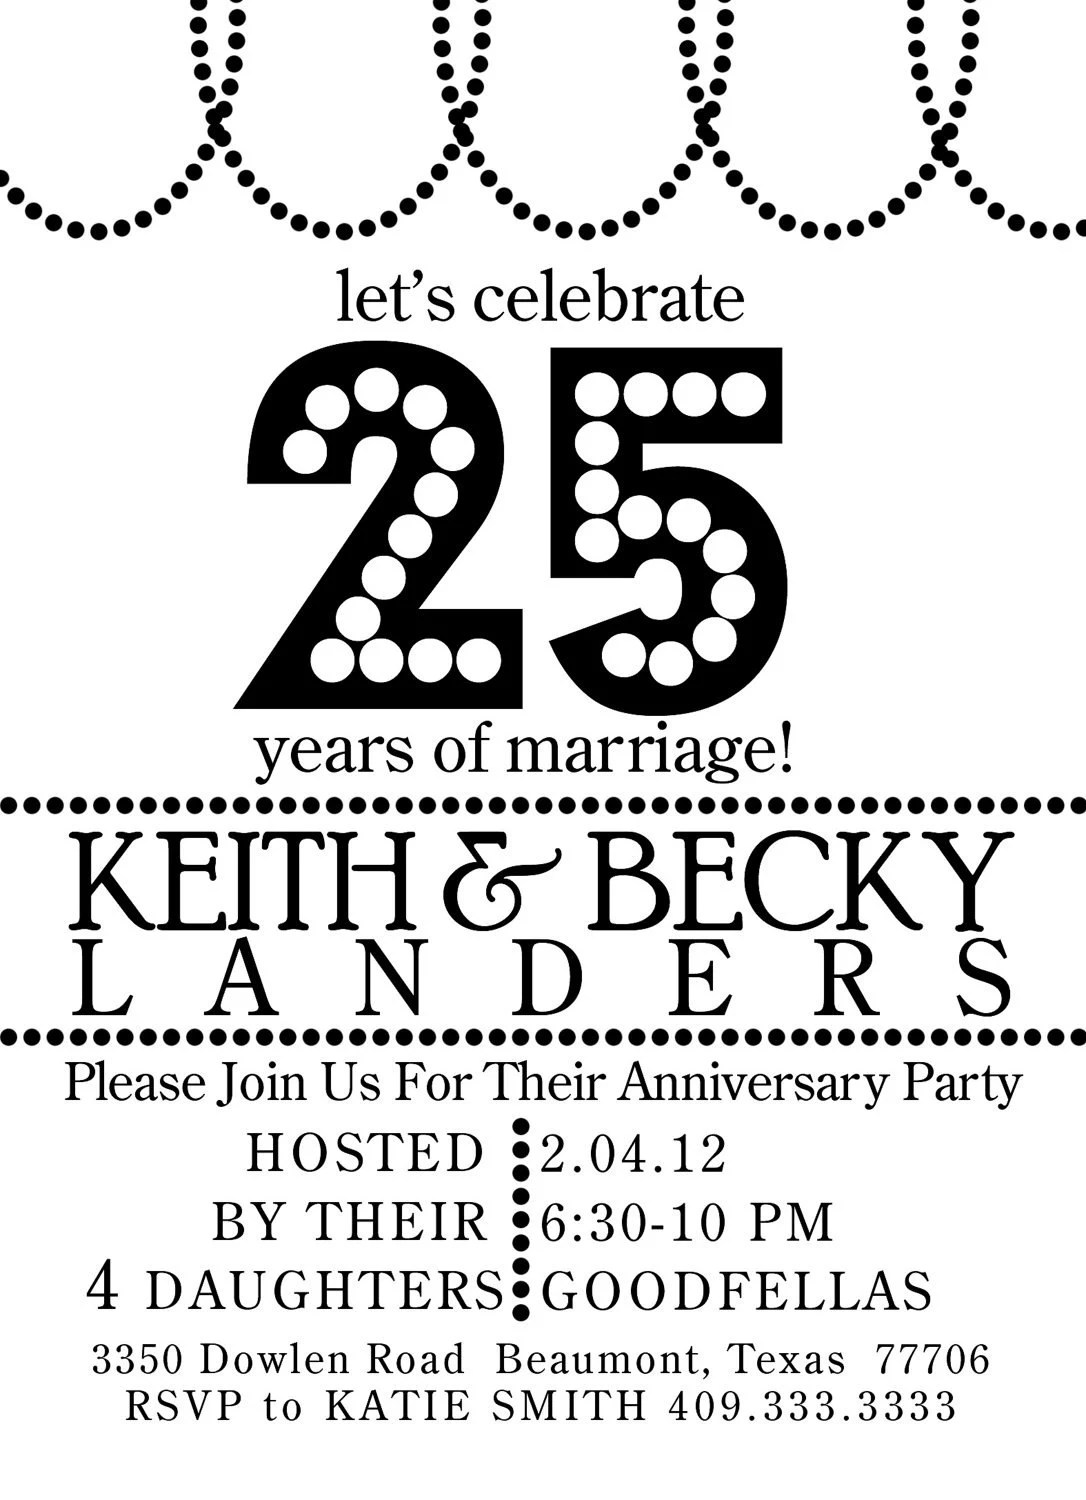 1000+ images about 25th Wedding Anniversary party ideas on